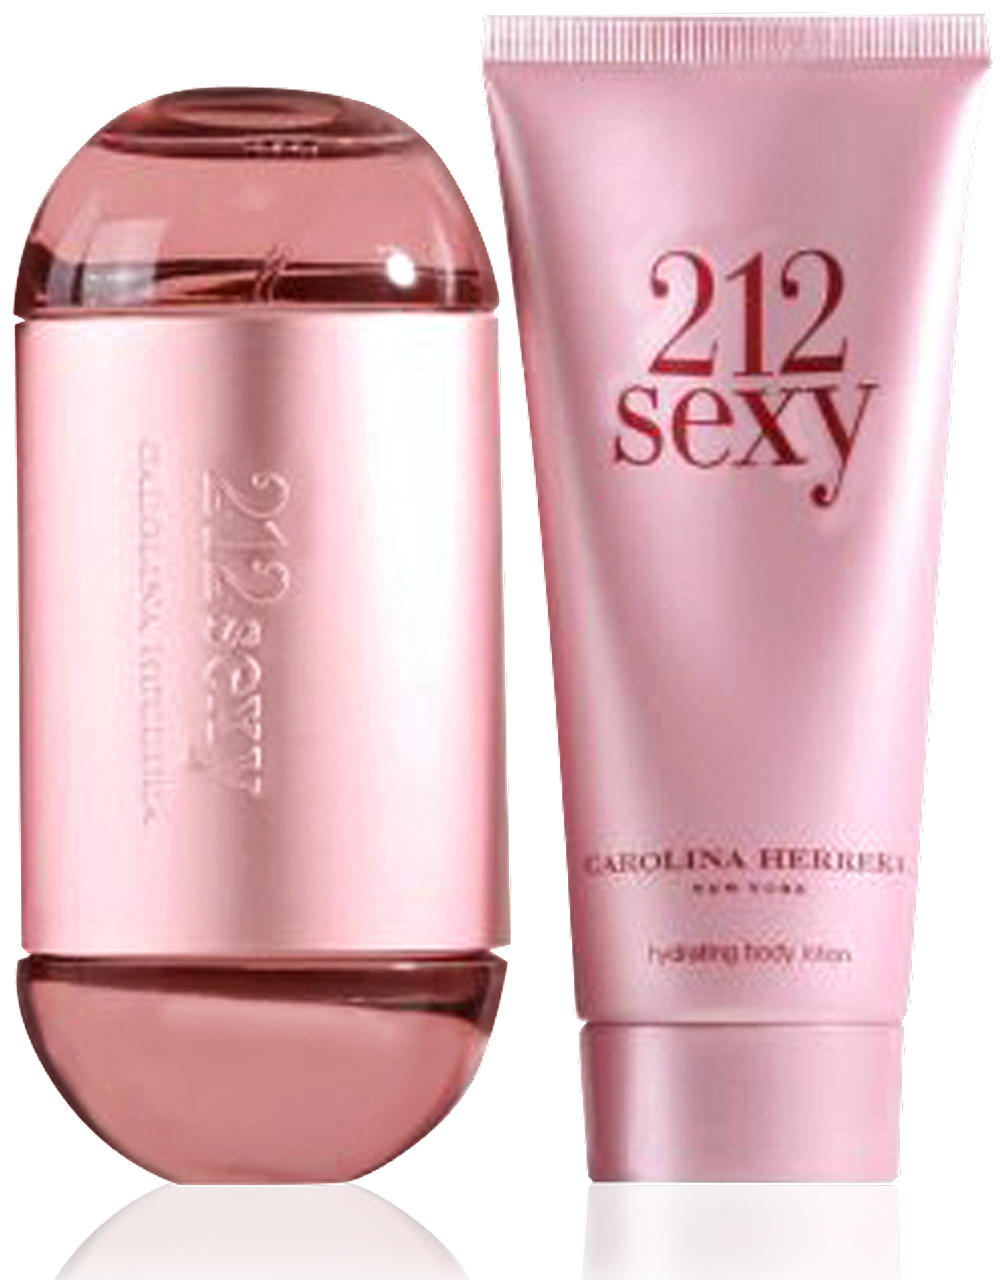 Carolina Herrera 212 Sexy EdP 60ml + Body Lotion 100ml